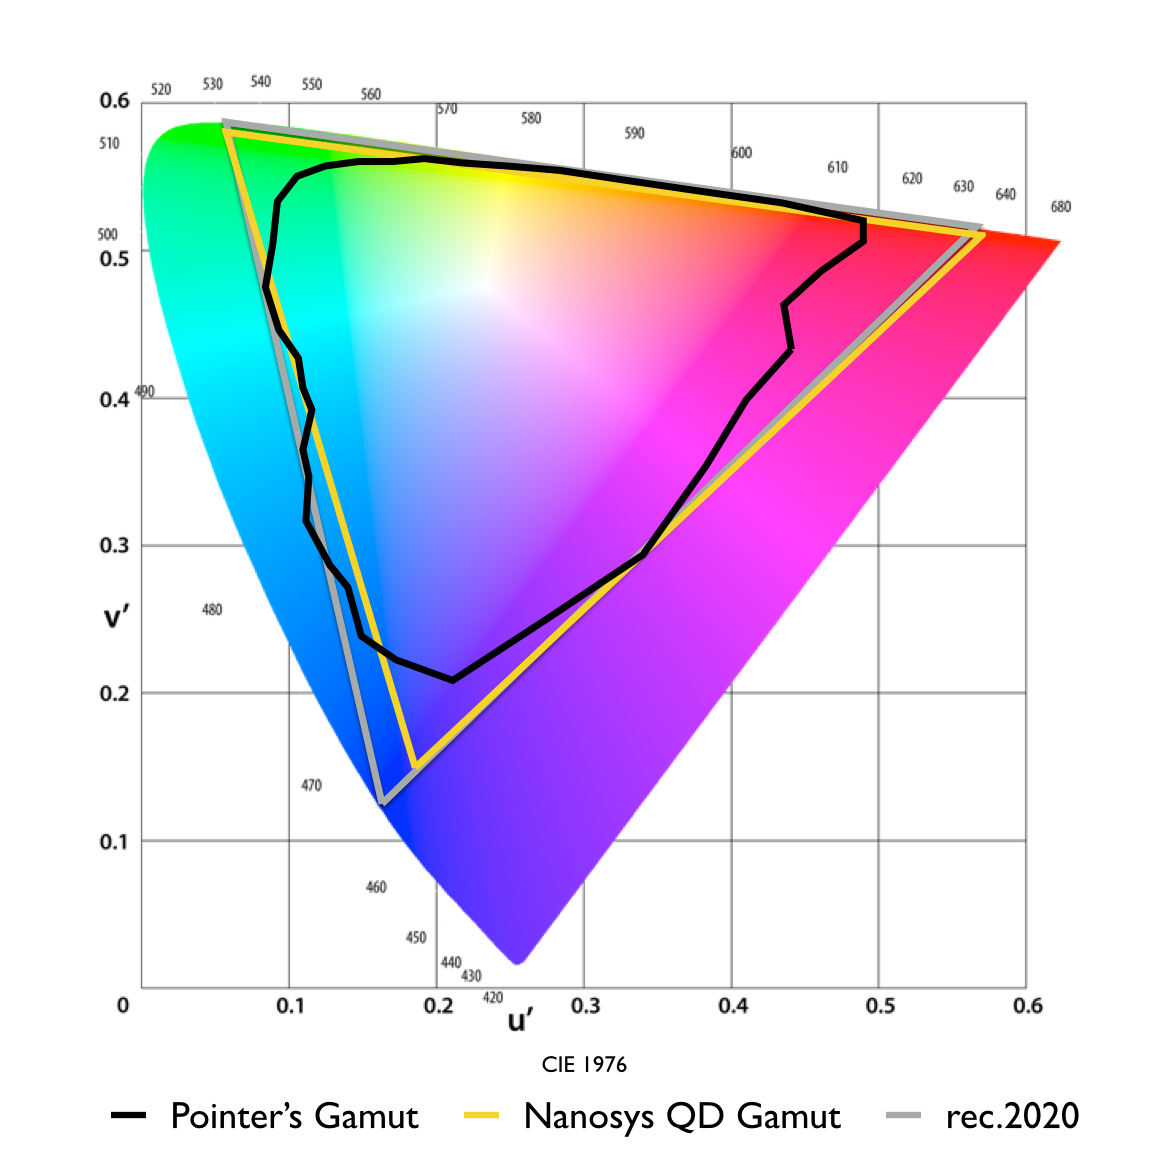 Nanosys demonstrates over 91% coverage of rec.2020 using Quantum Dots and a standard LCD TV color filter